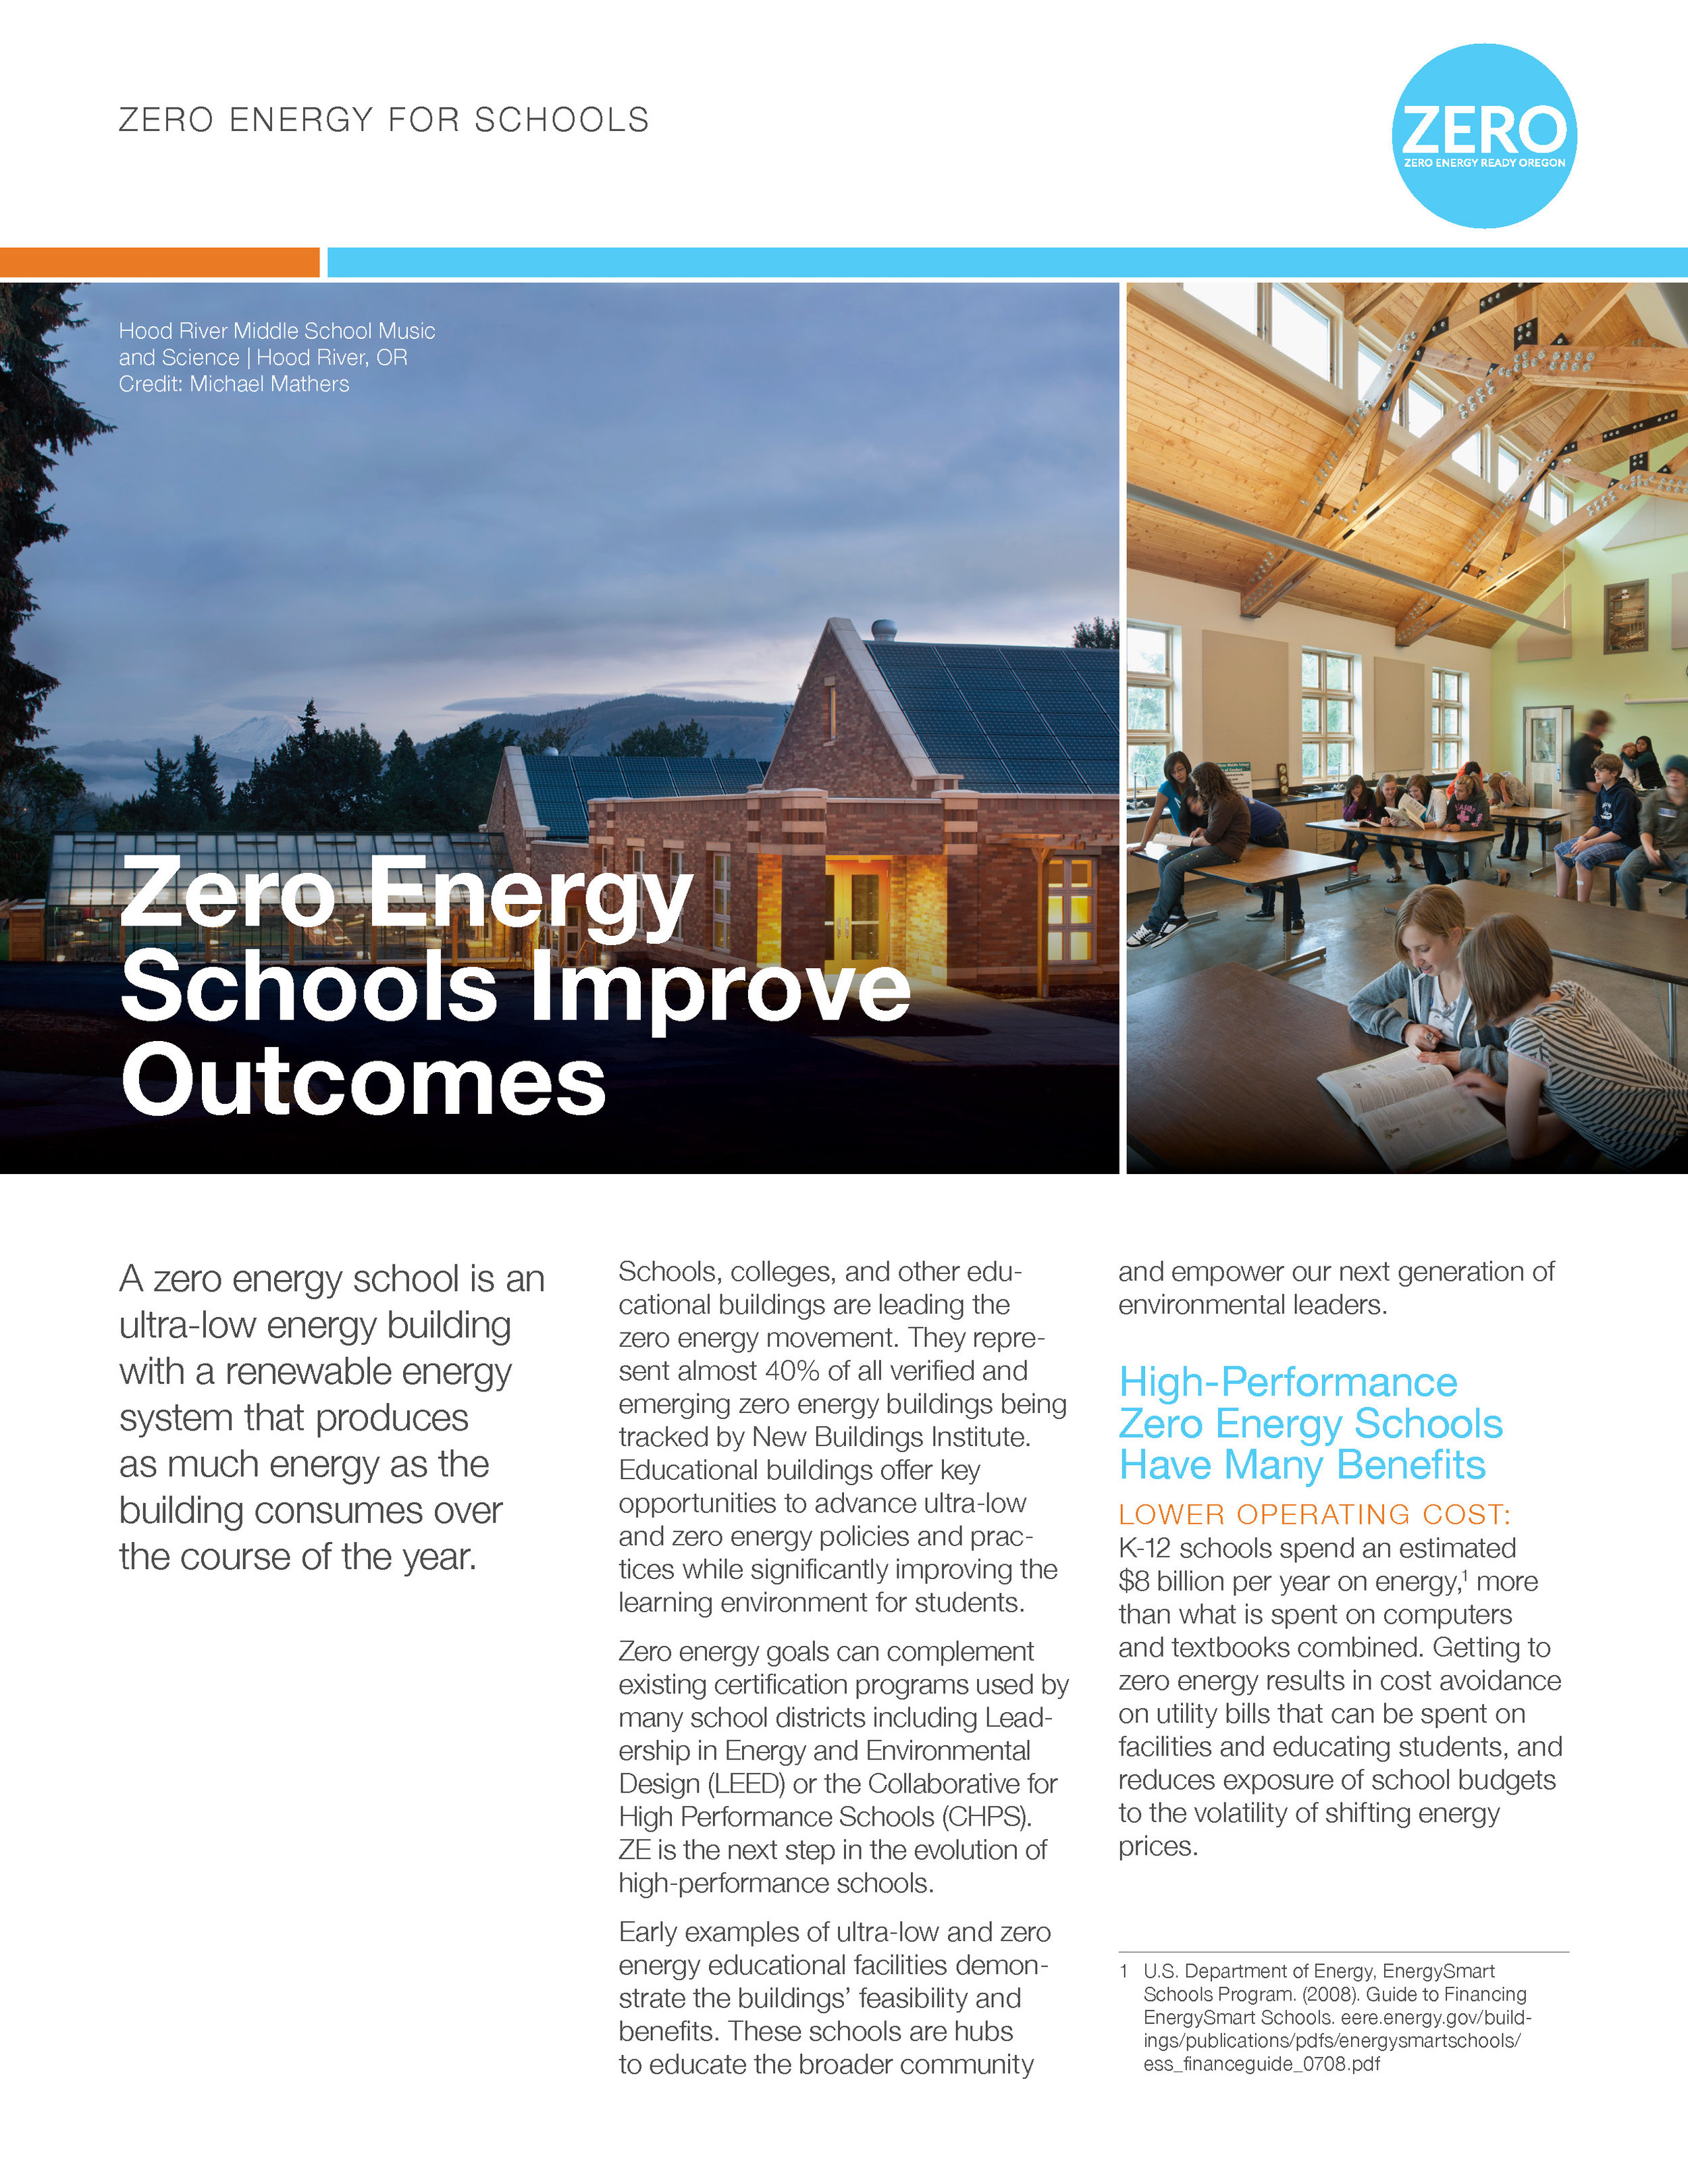 Zero Energy for Schools Fact Sheet - Educational buildings offer key opportunities to advance ultra-low and zero energy policies and practices while significantly improving the learning environment for students.